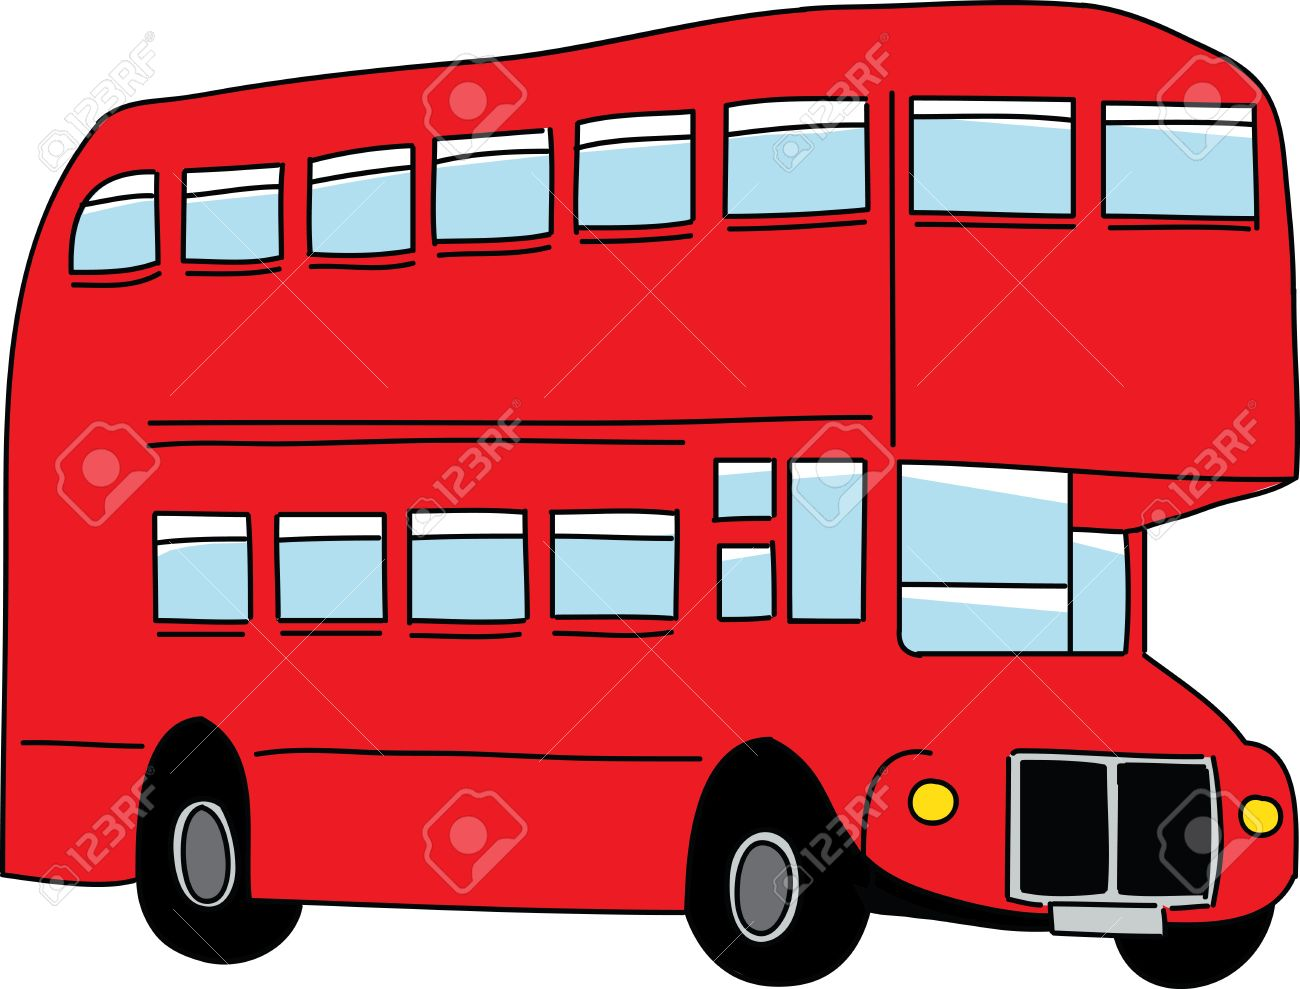 London cliparts free download best london cliparts on for Clipart bus